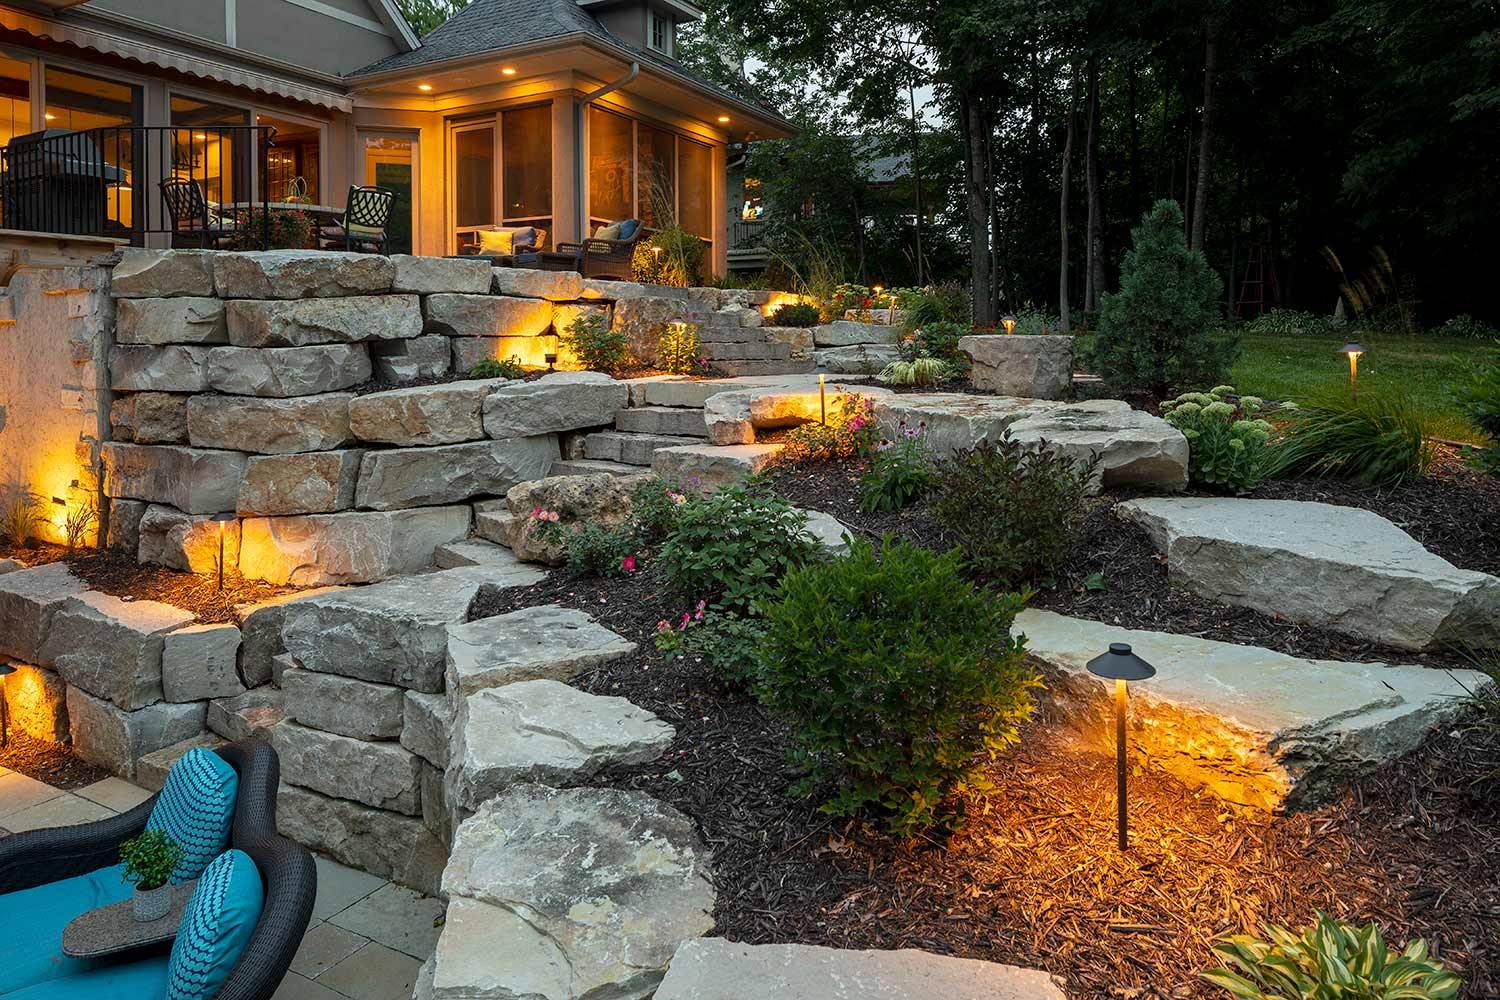 Landscape Lighting-Irving TX Landscape Designs & Outdoor Living Areas-We offer Landscape Design, Outdoor Patios & Pergolas, Outdoor Living Spaces, Stonescapes, Residential & Commercial Landscaping, Irrigation Installation & Repairs, Drainage Systems, Landscape Lighting, Outdoor Living Spaces, Tree Service, Lawn Service, and more.